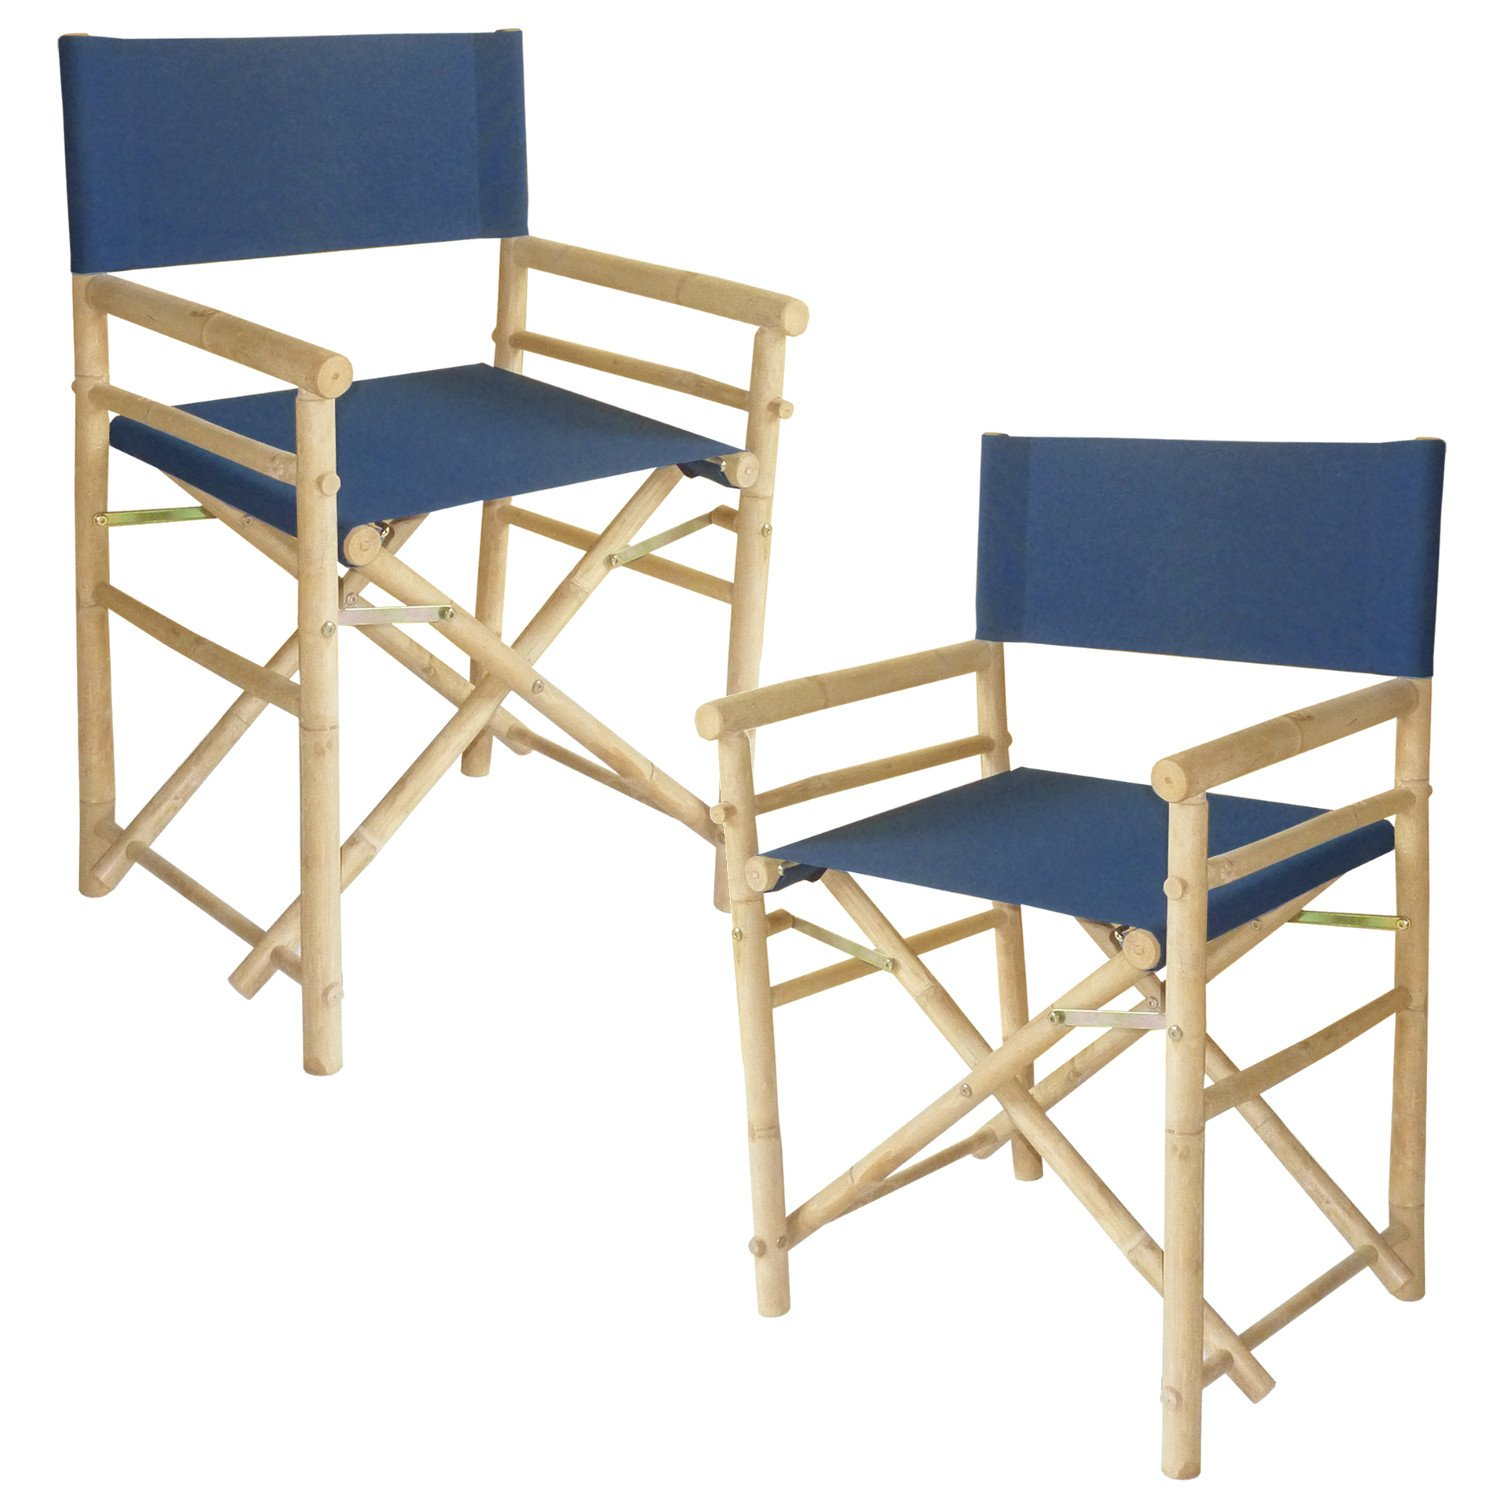 Zew Hand Crafted Foldable Bamboo Director's Chair with Treated Comfortable Canvas, Set of 2 Folding Chairs, Blue